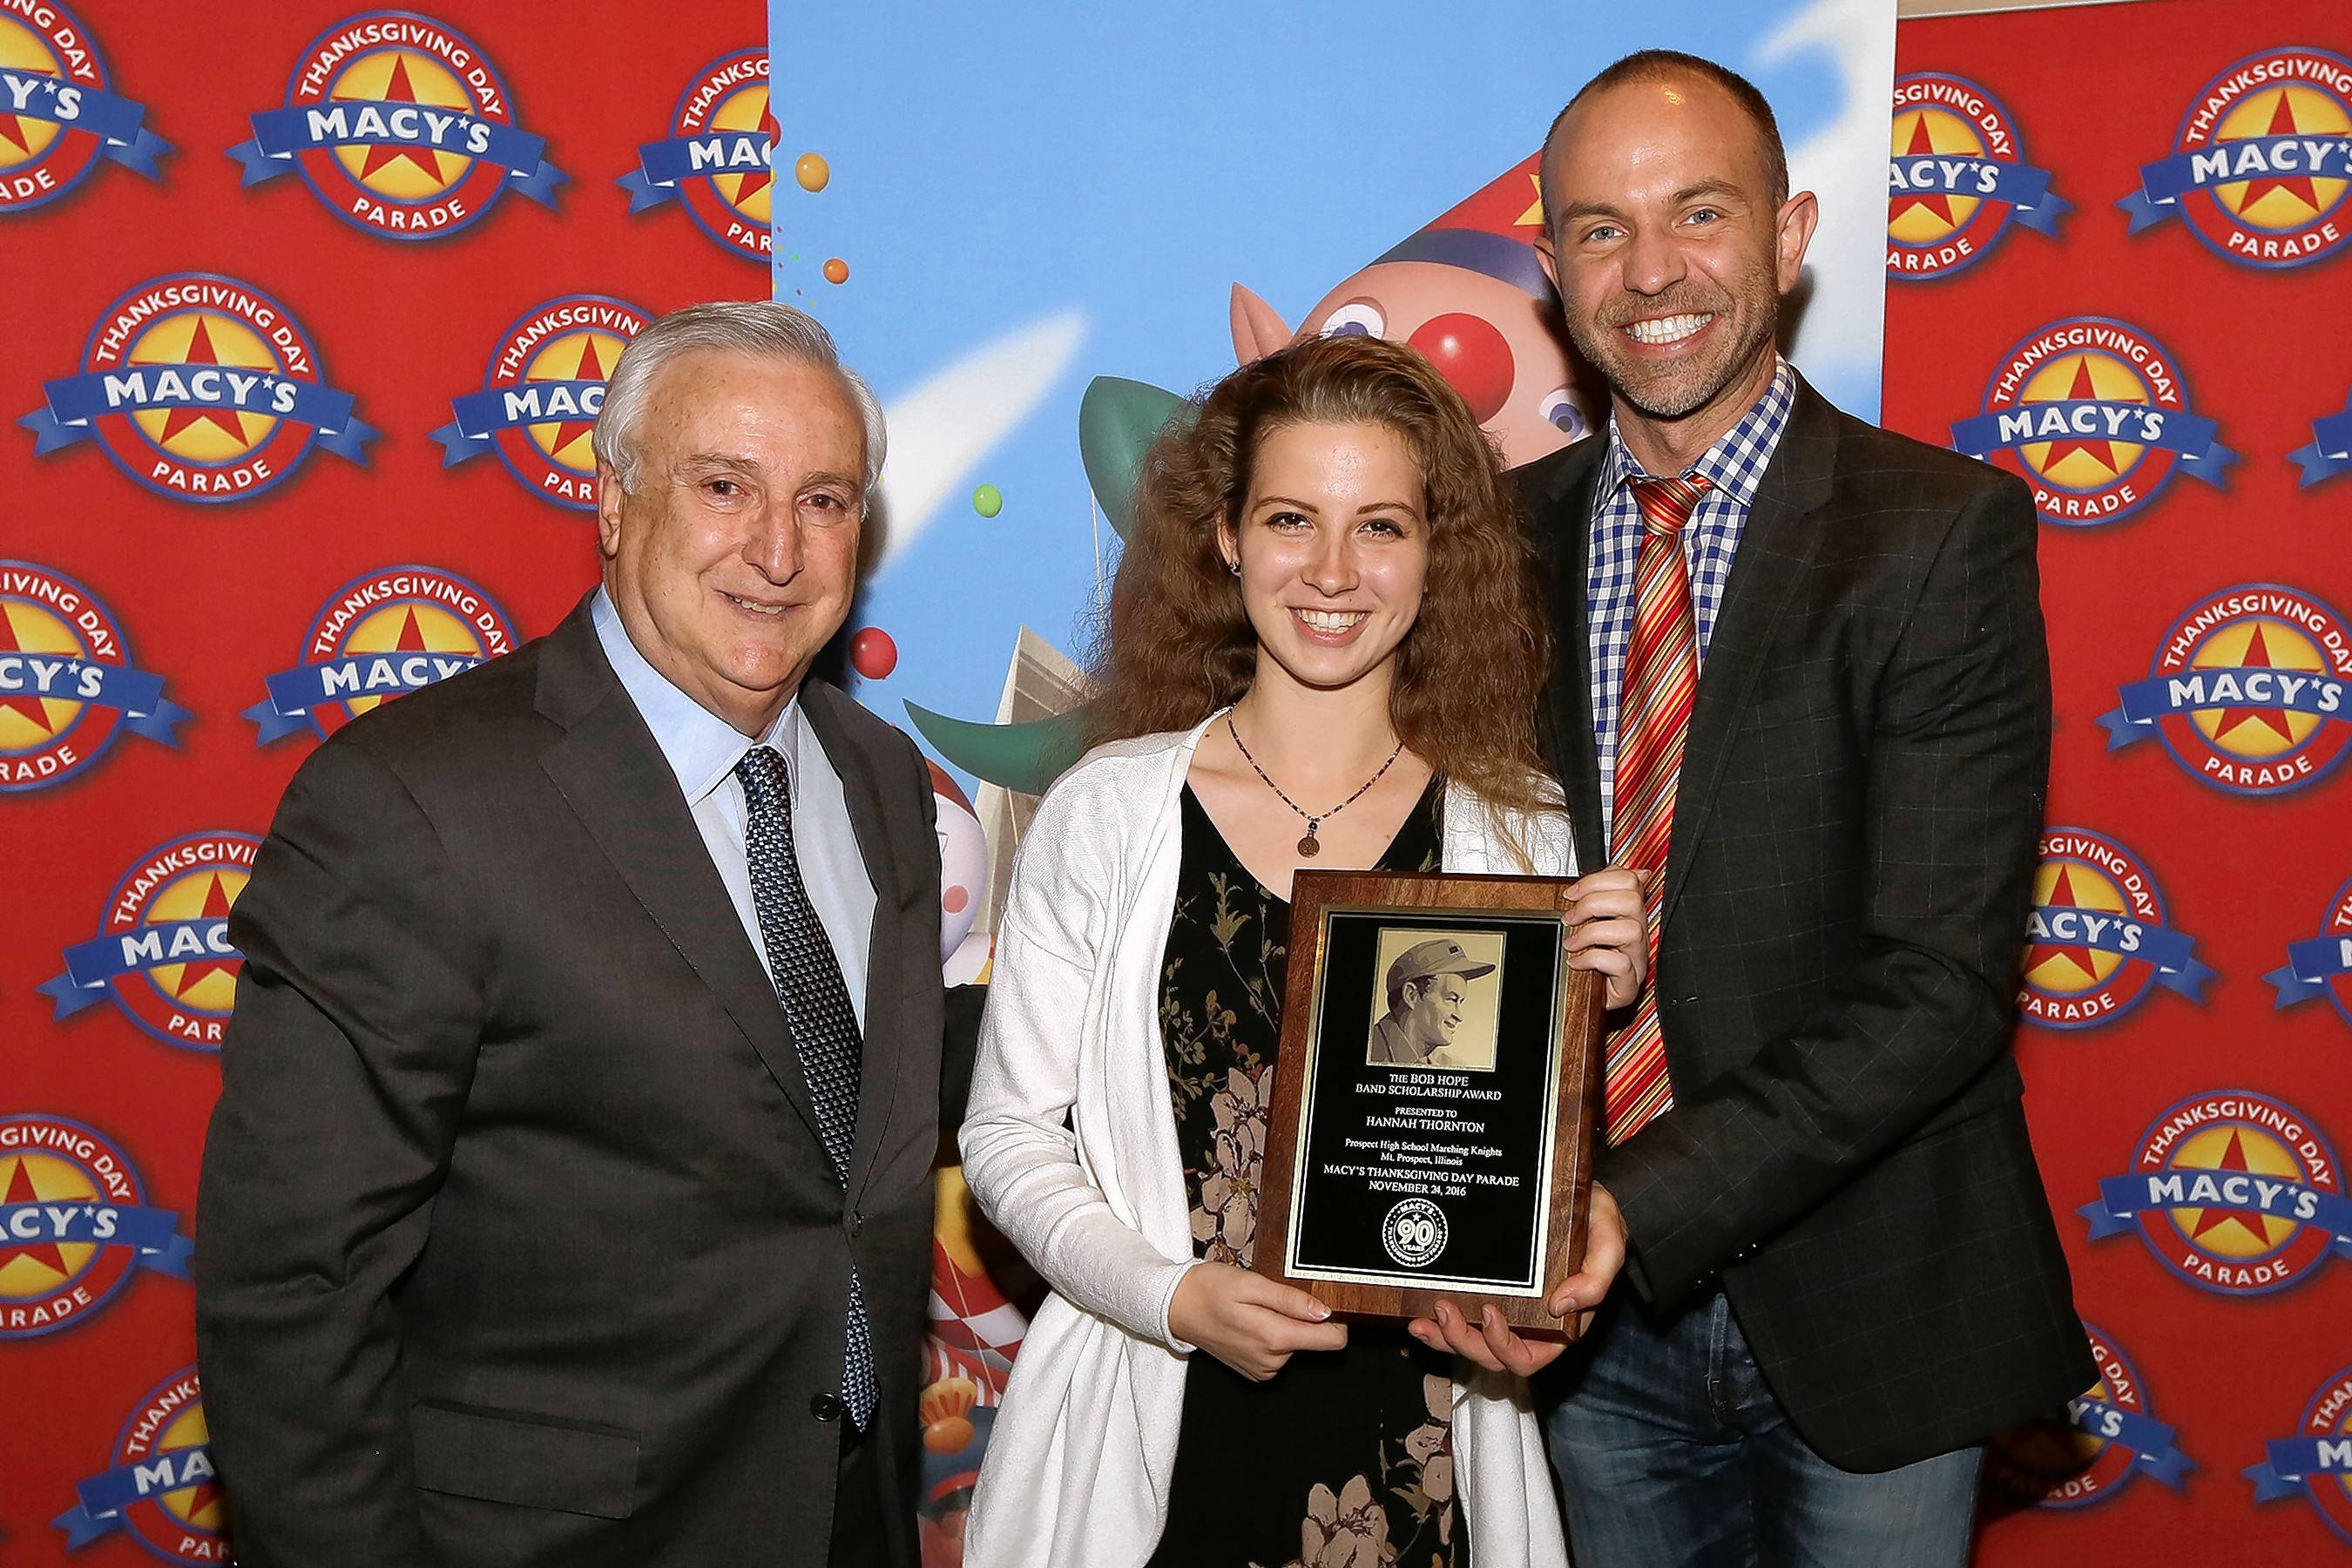 Tony Montalto, left, executive director of the Bob & Dolores Hope Foundation, stands with scholarship award winner Hannah Thornton of Prospect High School and Wesley Whatley, creative director of the Macy's Parade and Entertainment Group.